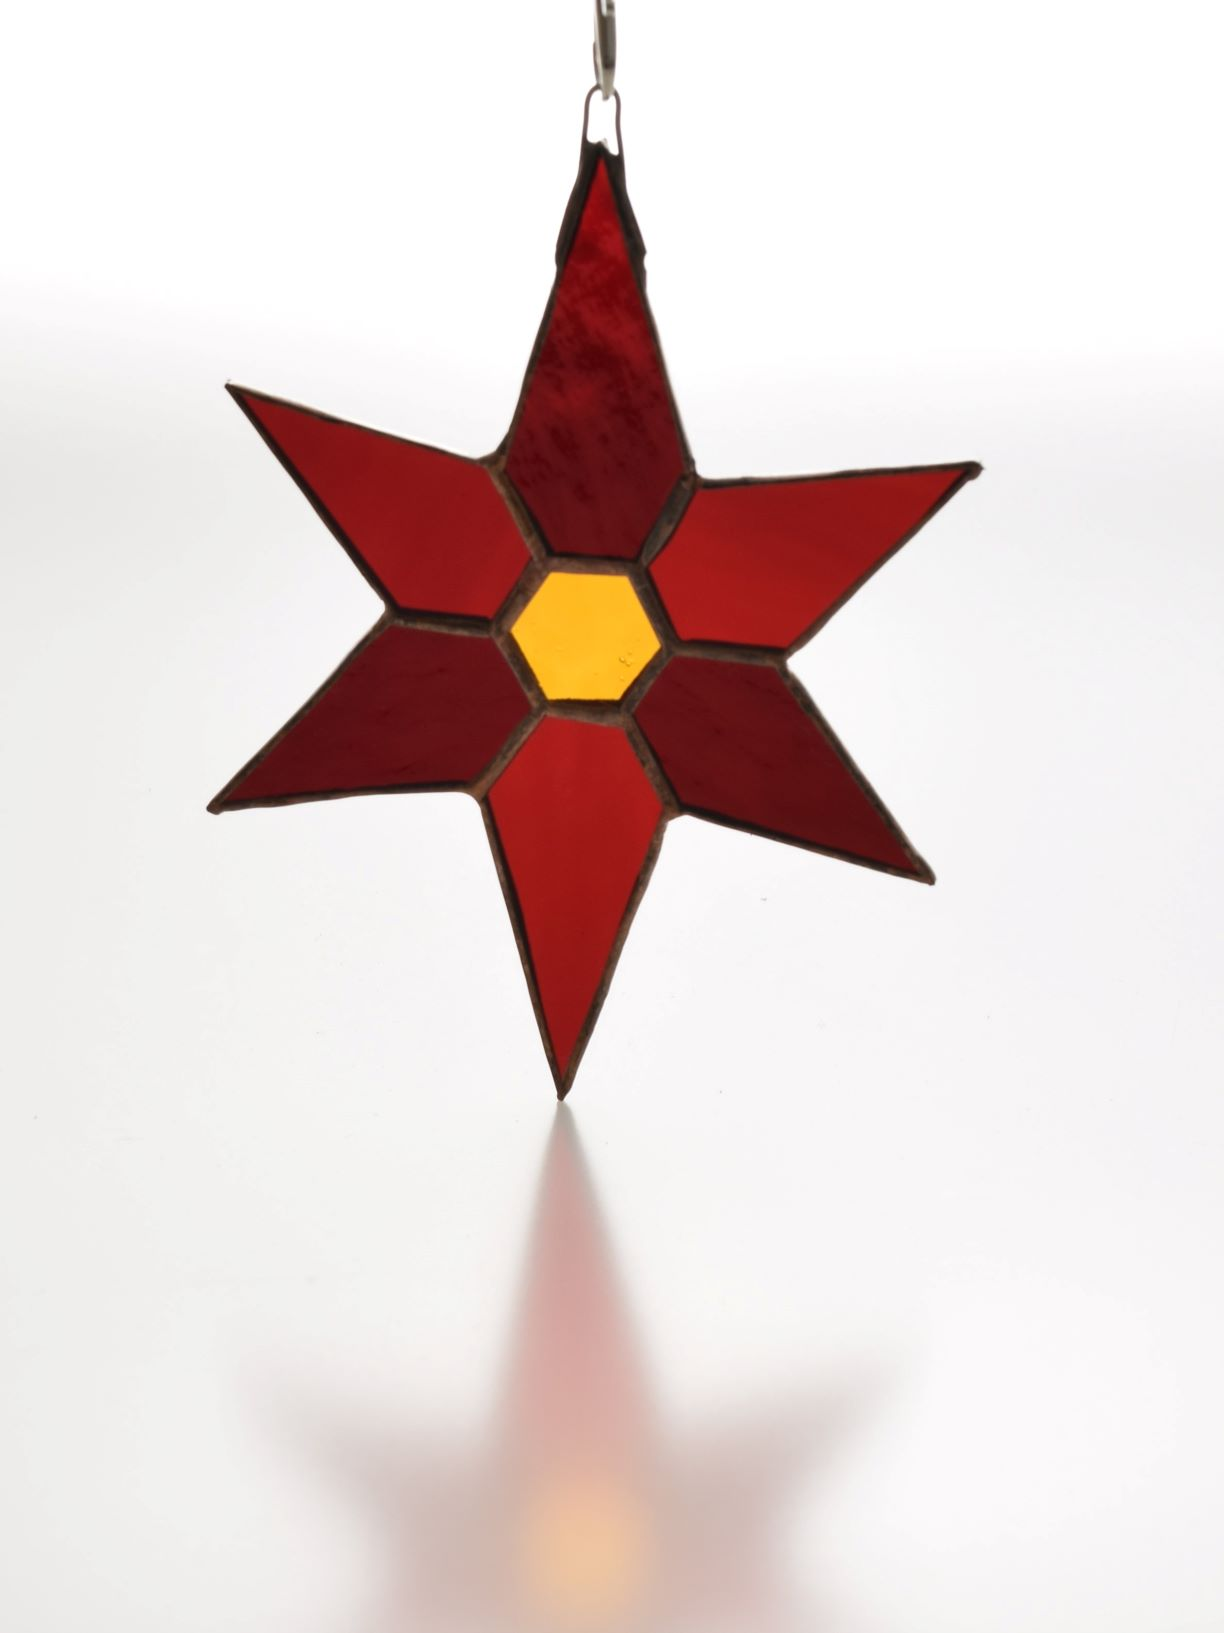 Stained glass six pointed star in two shades of red glass with gold glass hexagon in the centre